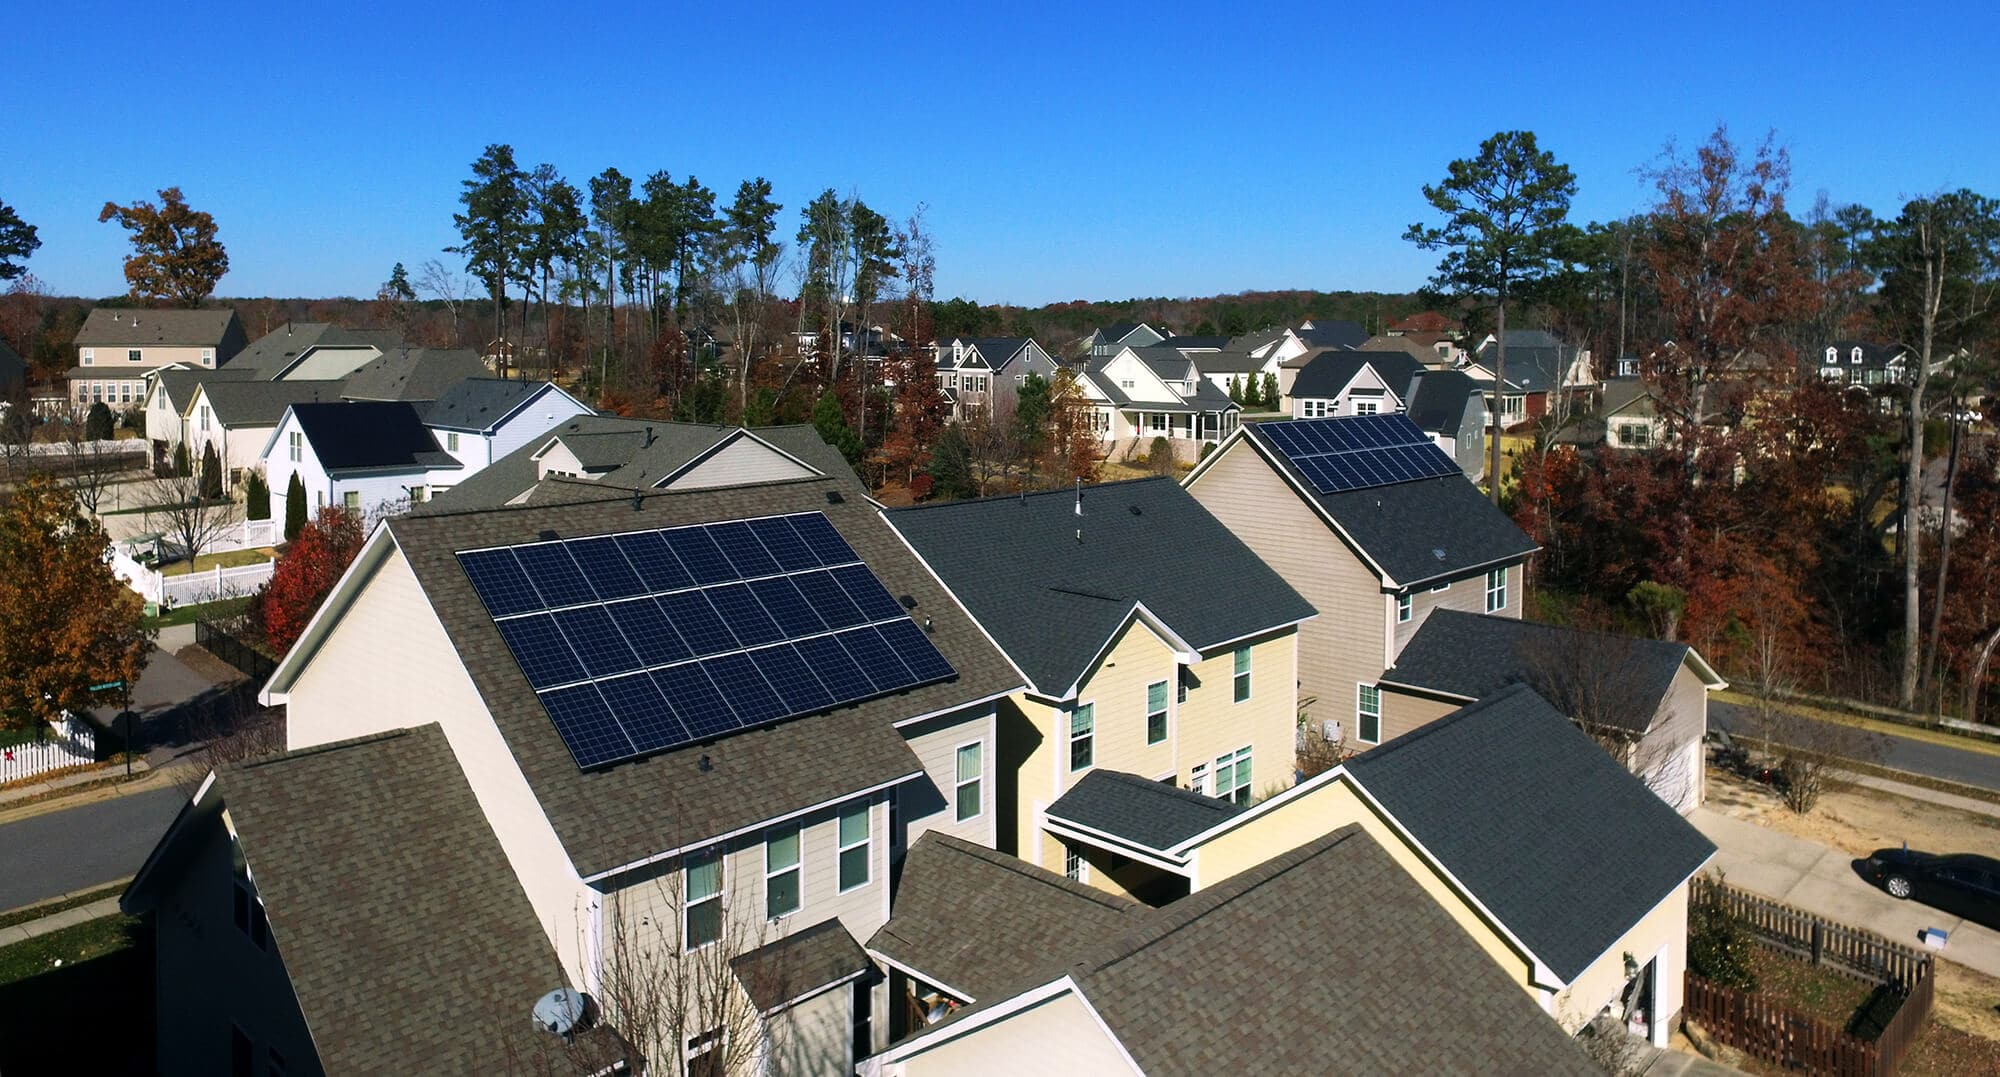 Two neighboring homes with rooftop solar systems on the same street